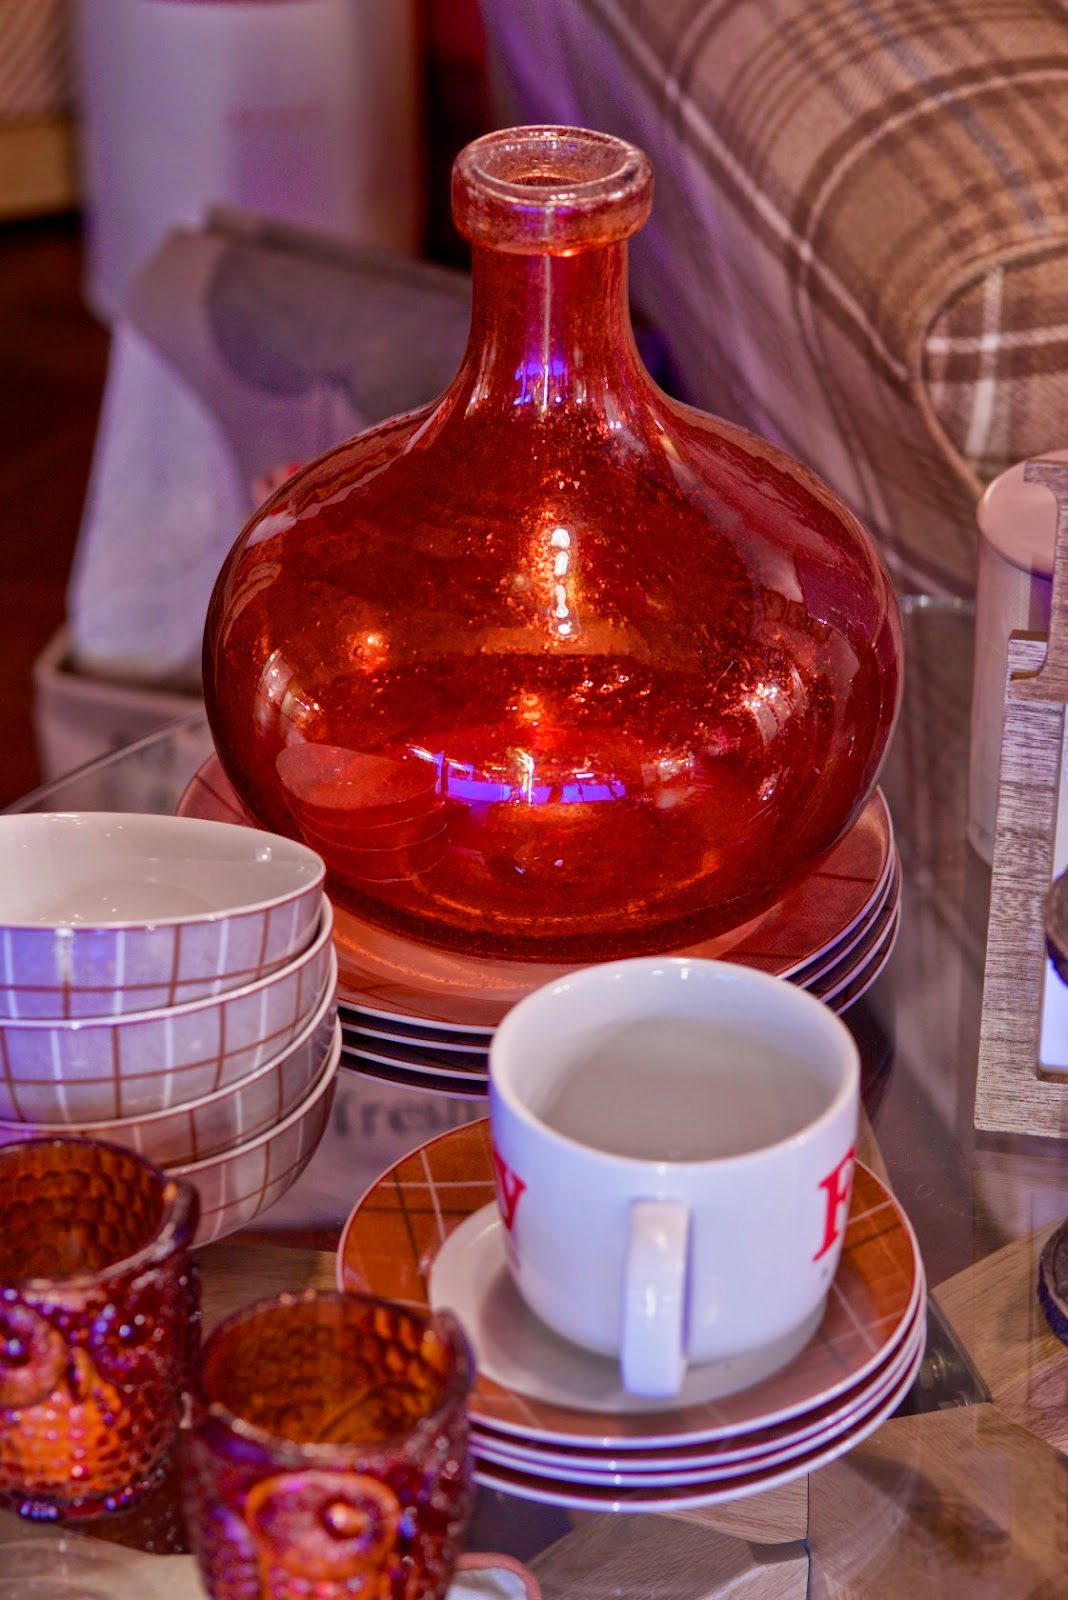 red glass vase and crockery from next